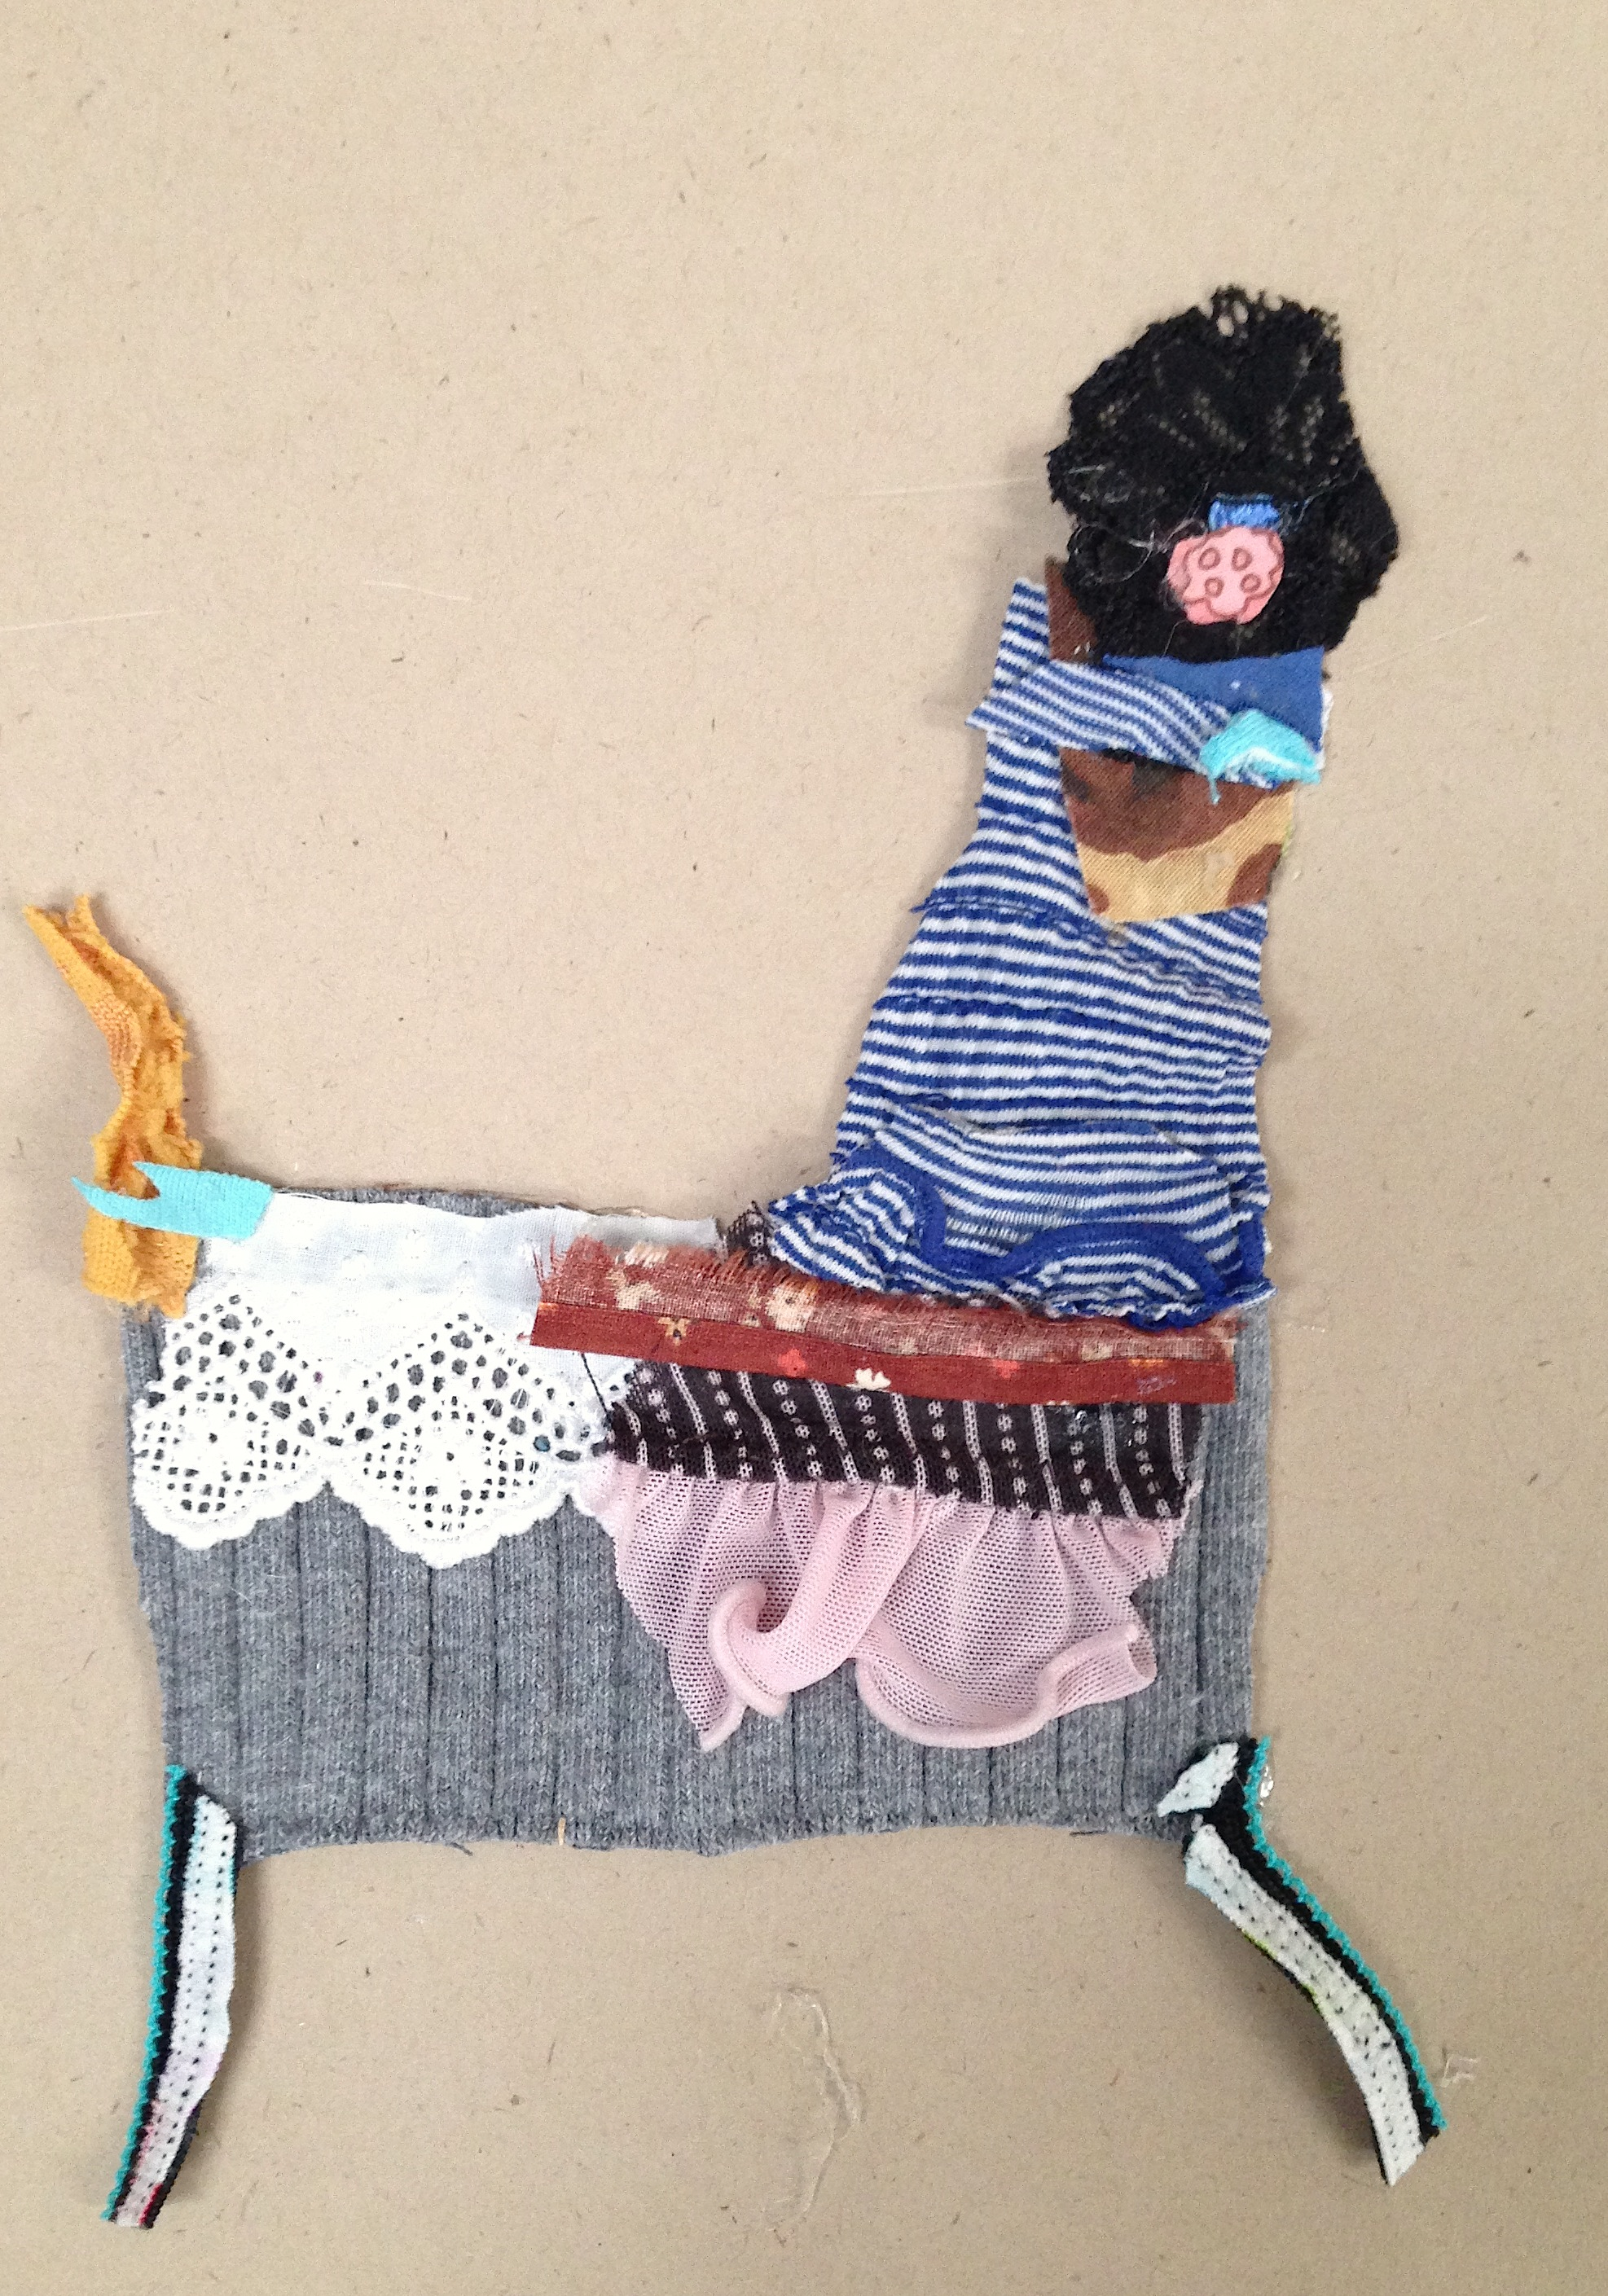 Lamb Headed Doe  20.5 x 20.5 inches  Recycled fabric:  2015